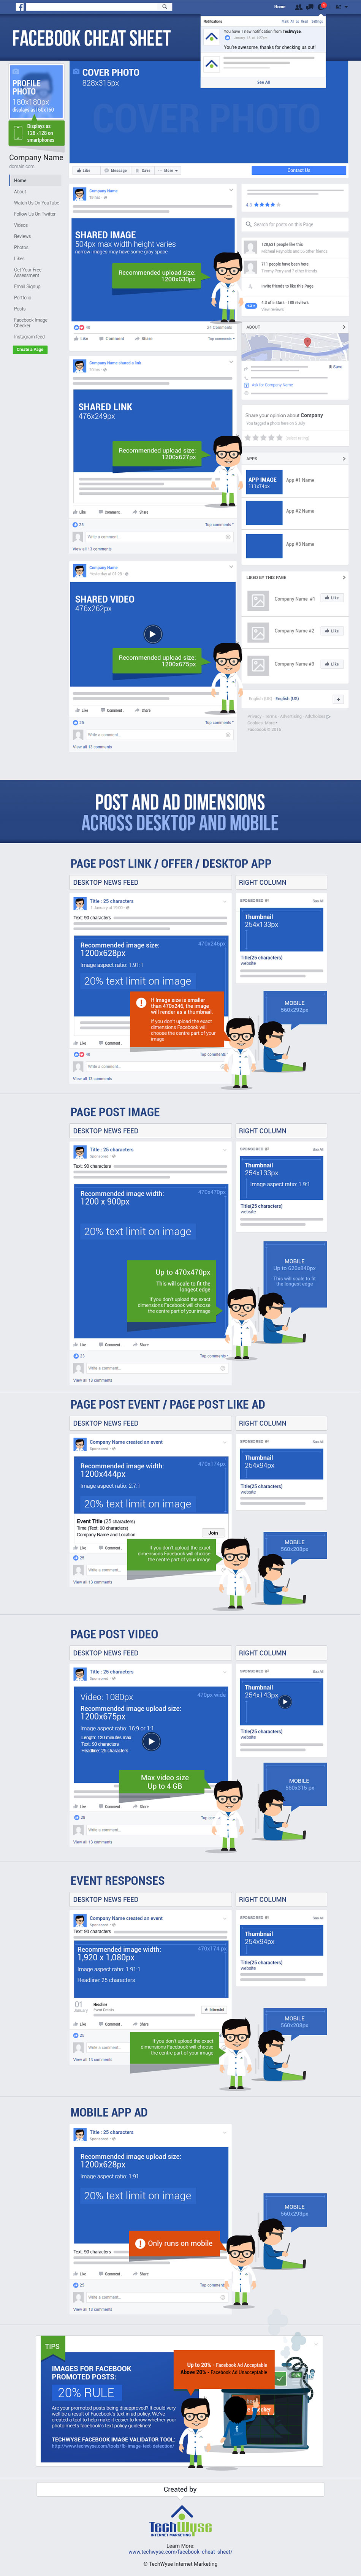 Facebook image sizes and dimensions 2017